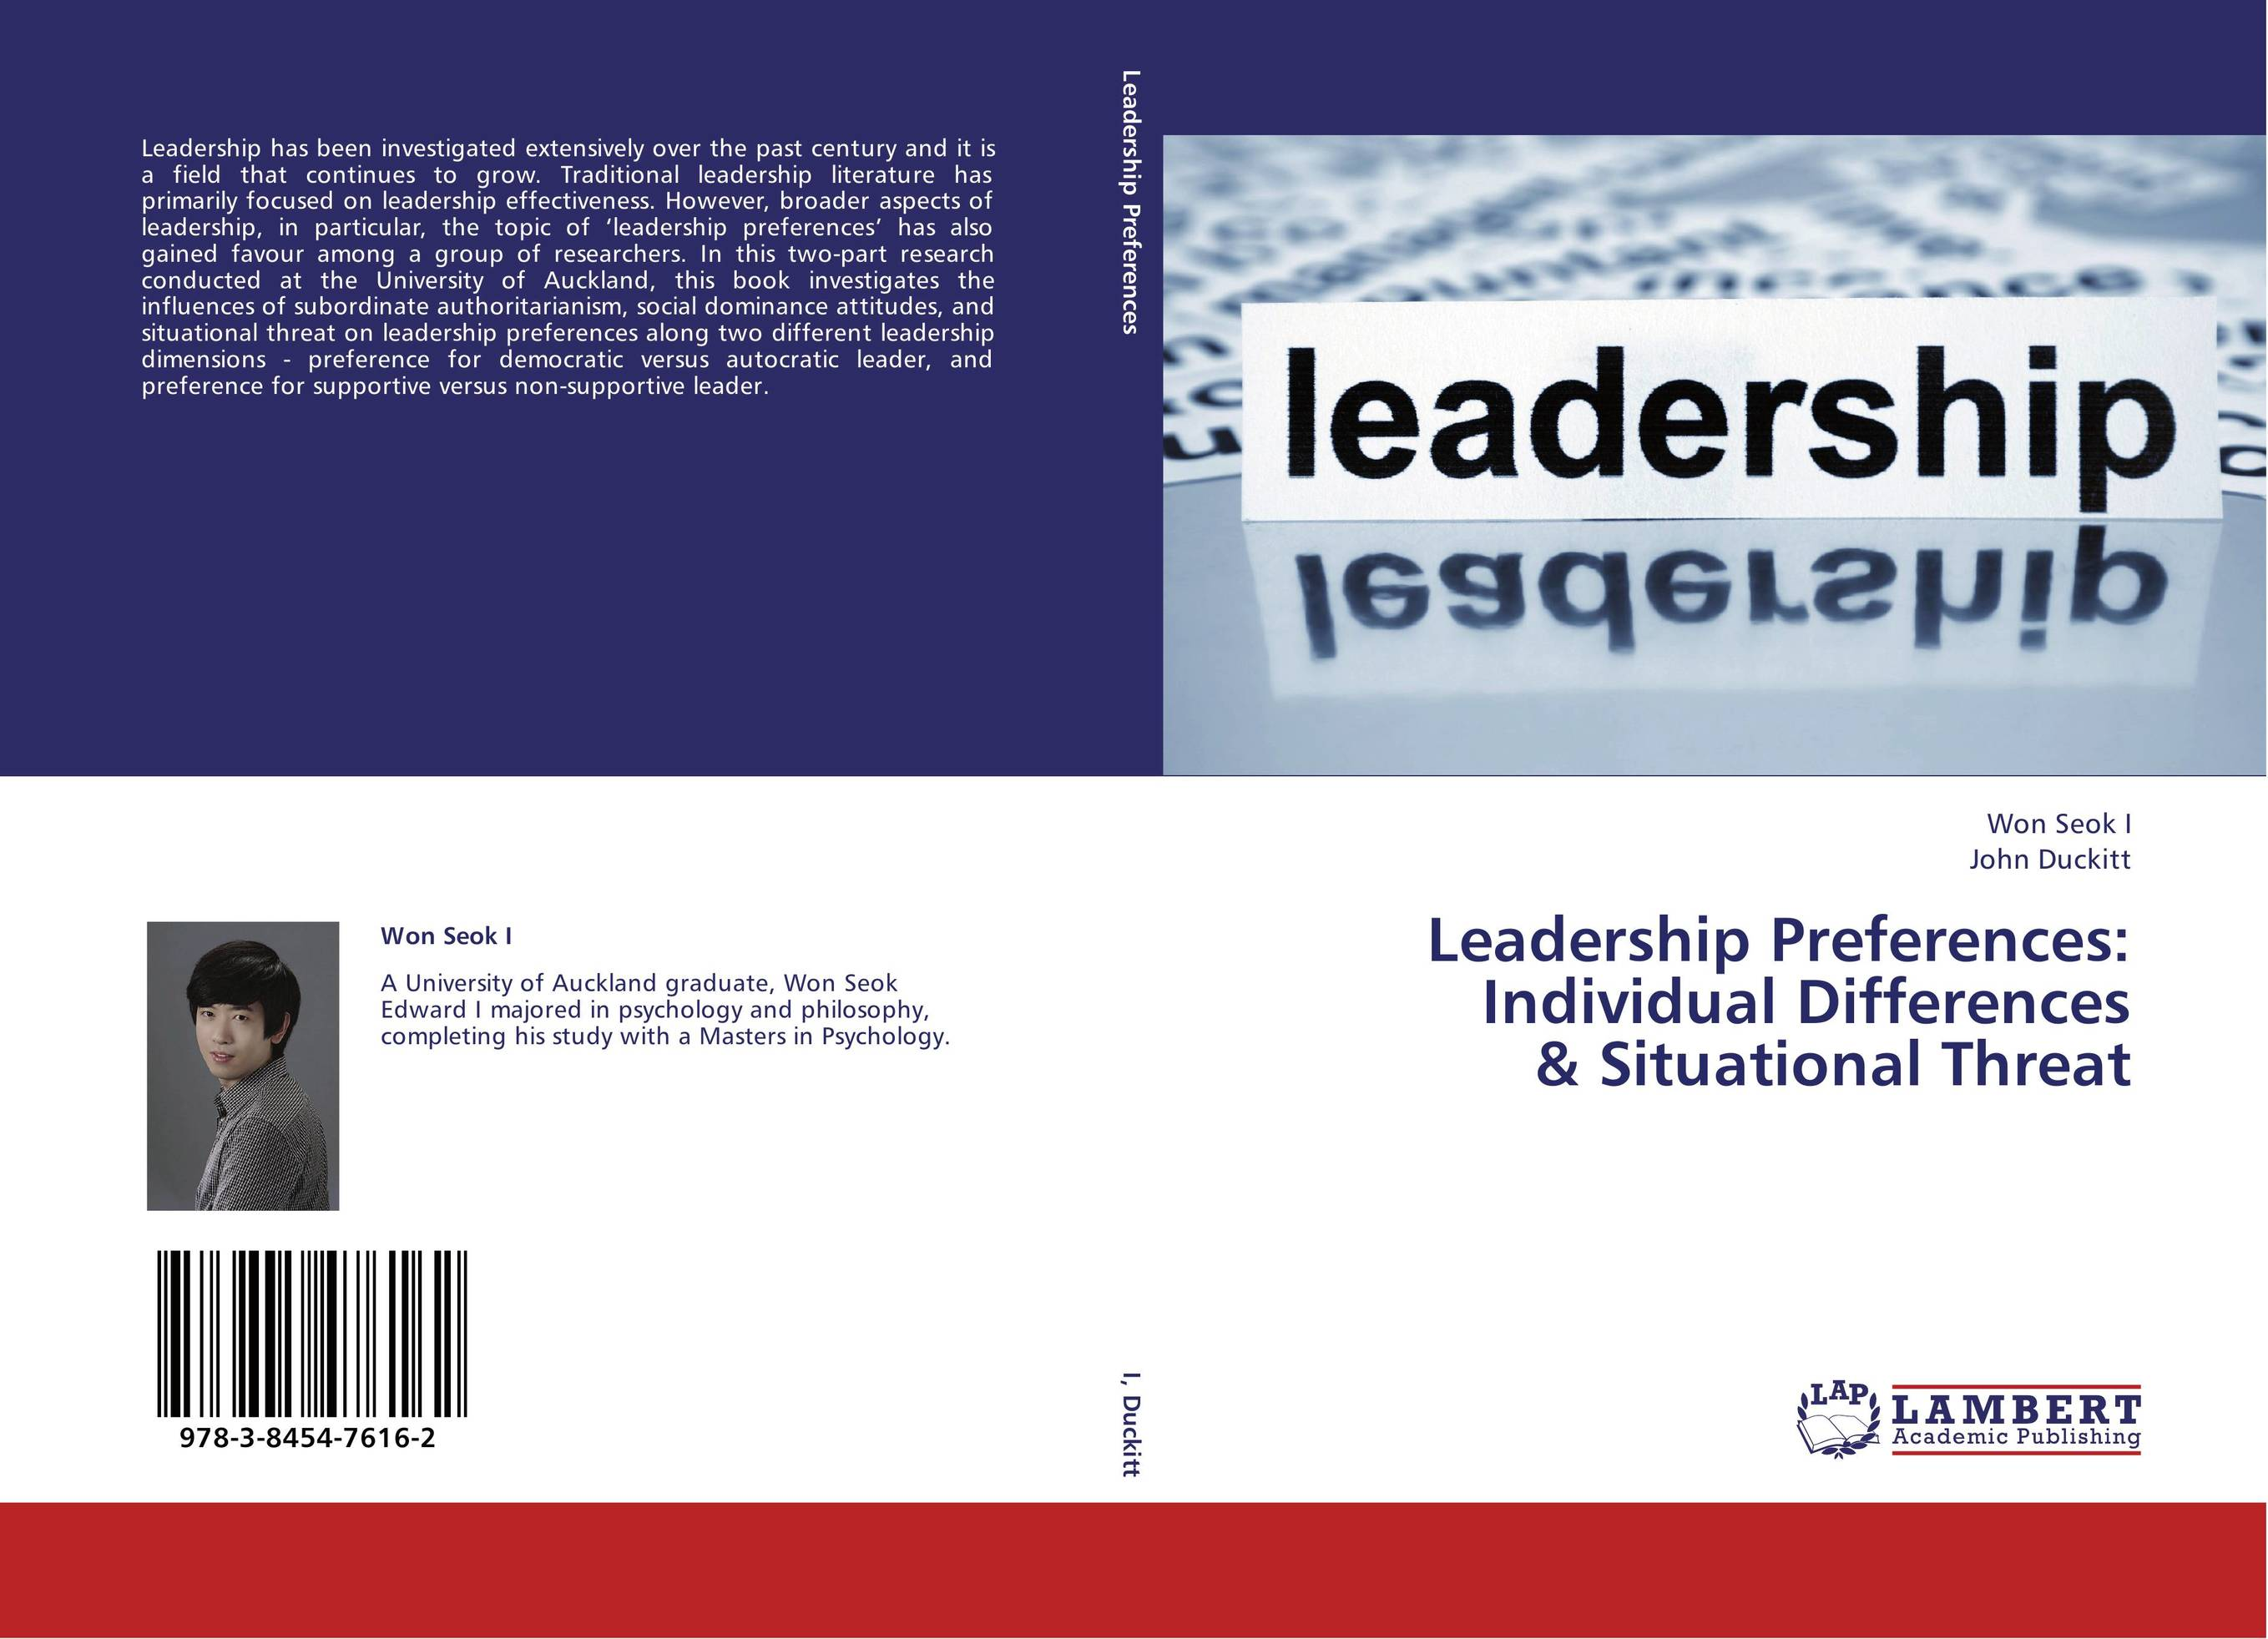 a look at leadership psychology essay At this stage in the college admissions essay writing process, you have considered the goals and psychology of the college admissions board you have produced a list of ideas/attributes/details about yourself that colleges will find appealing.